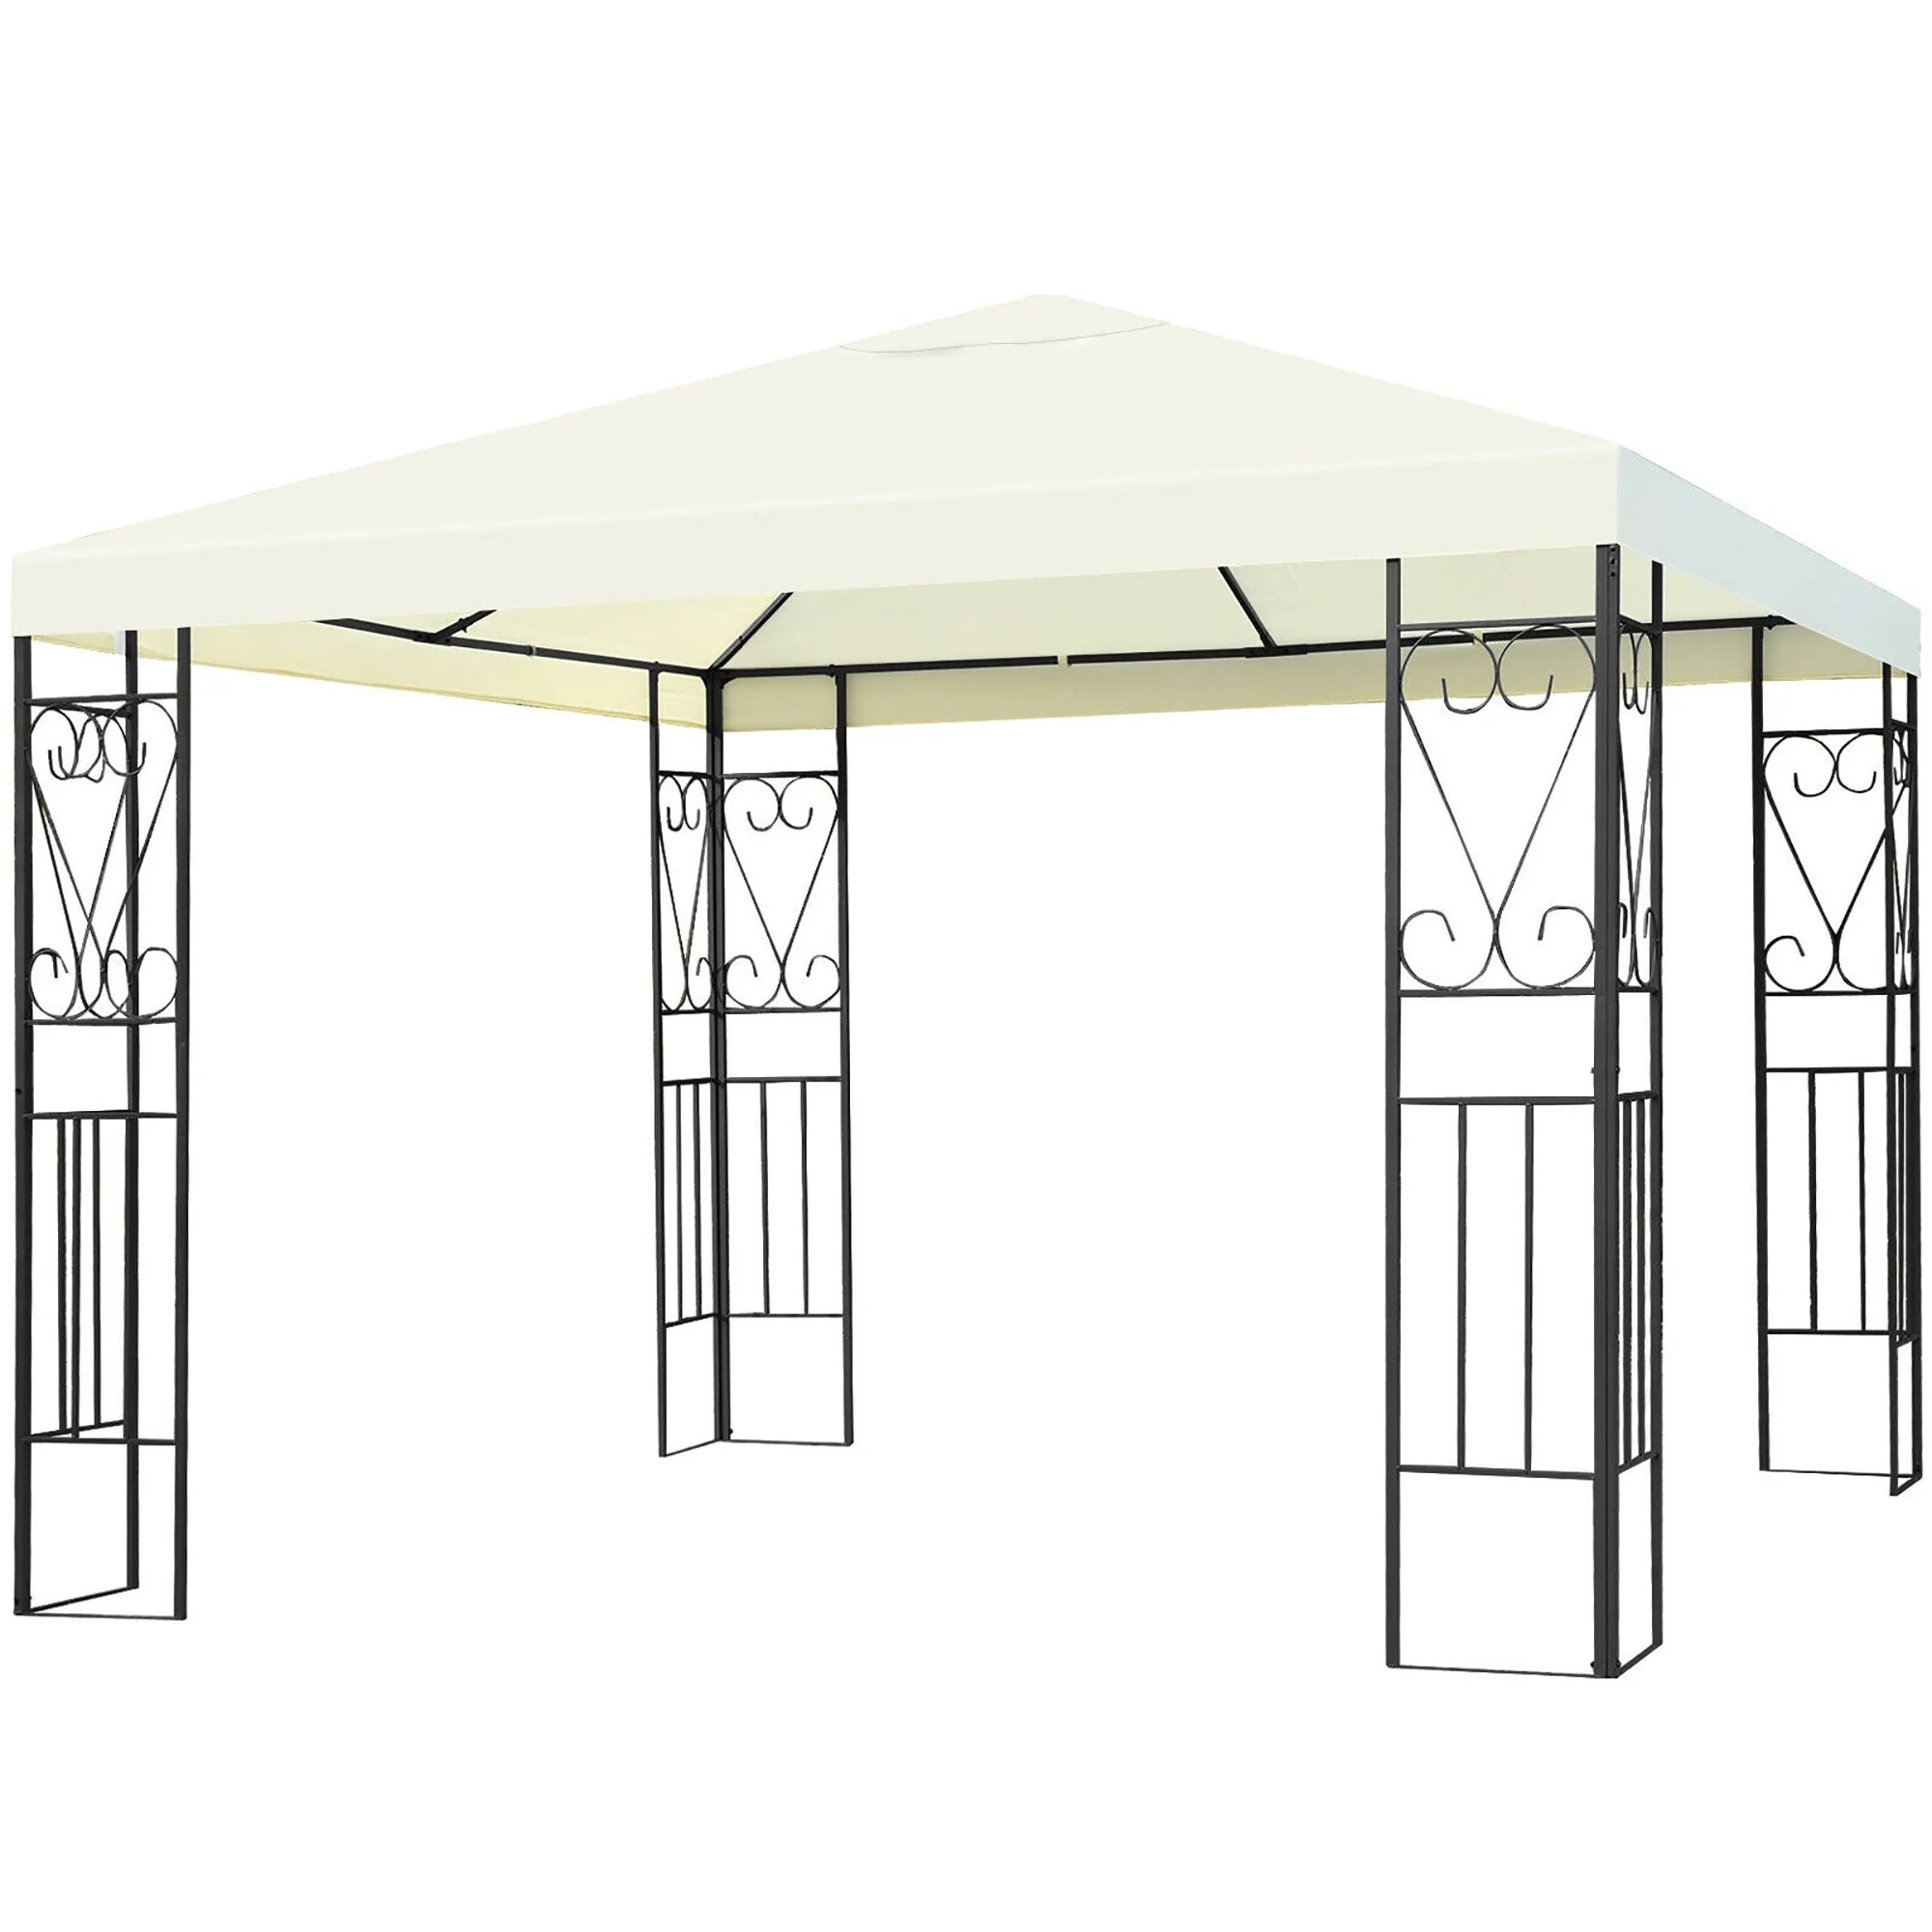 costway 10 x10 patio gazebo canopy tent steel frame shelter patio party awning